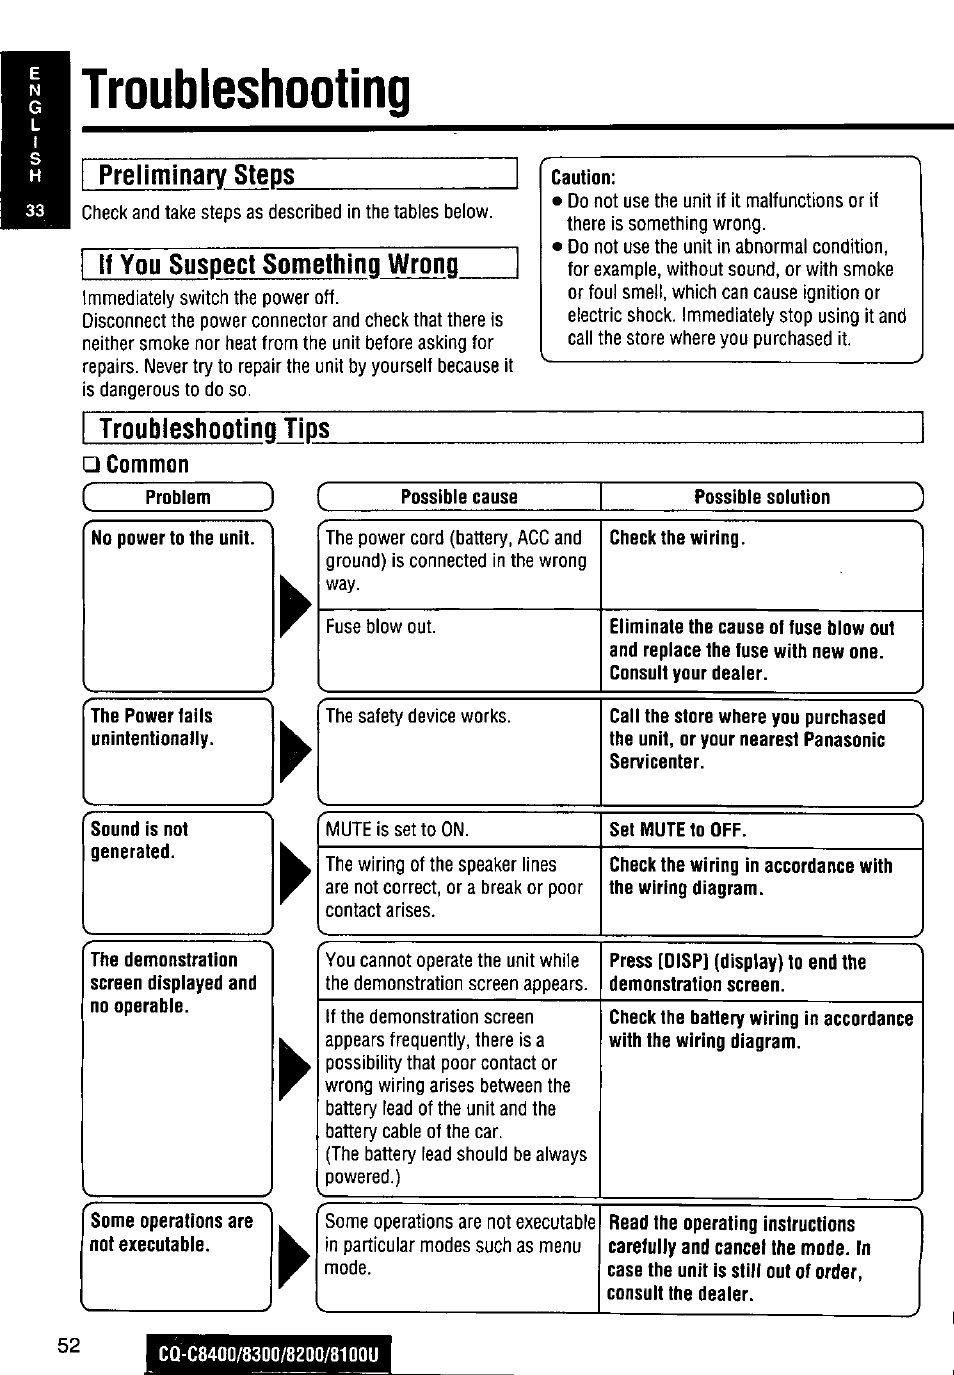 hight resolution of preliminary steps if you suspect something wrong troubleshooting tips common troubleshooting